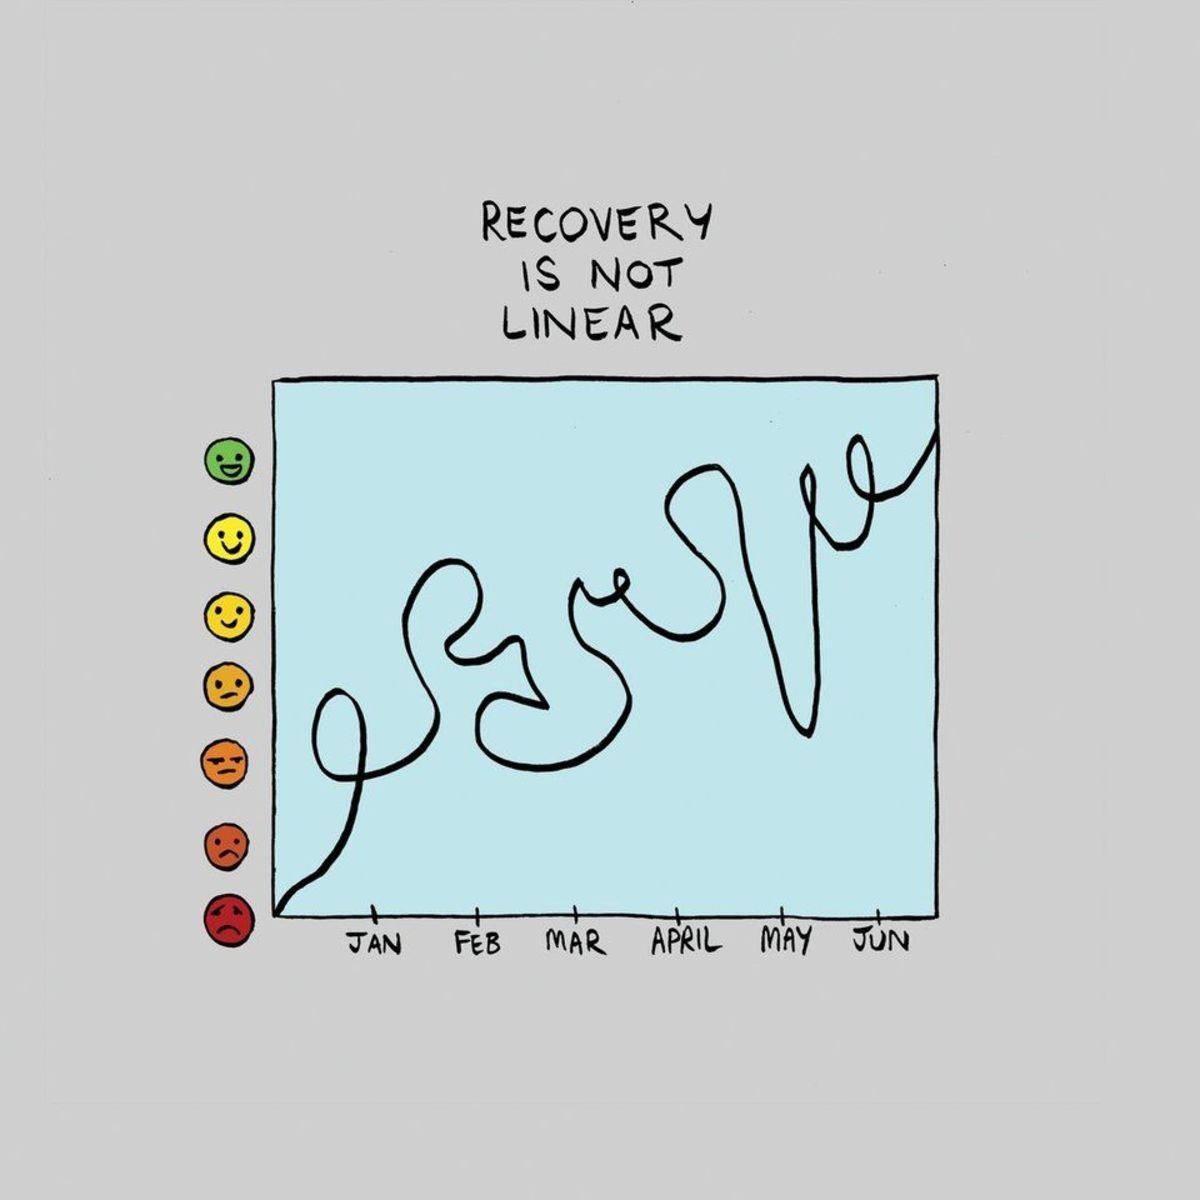 recovery-is-not-linear-part-1